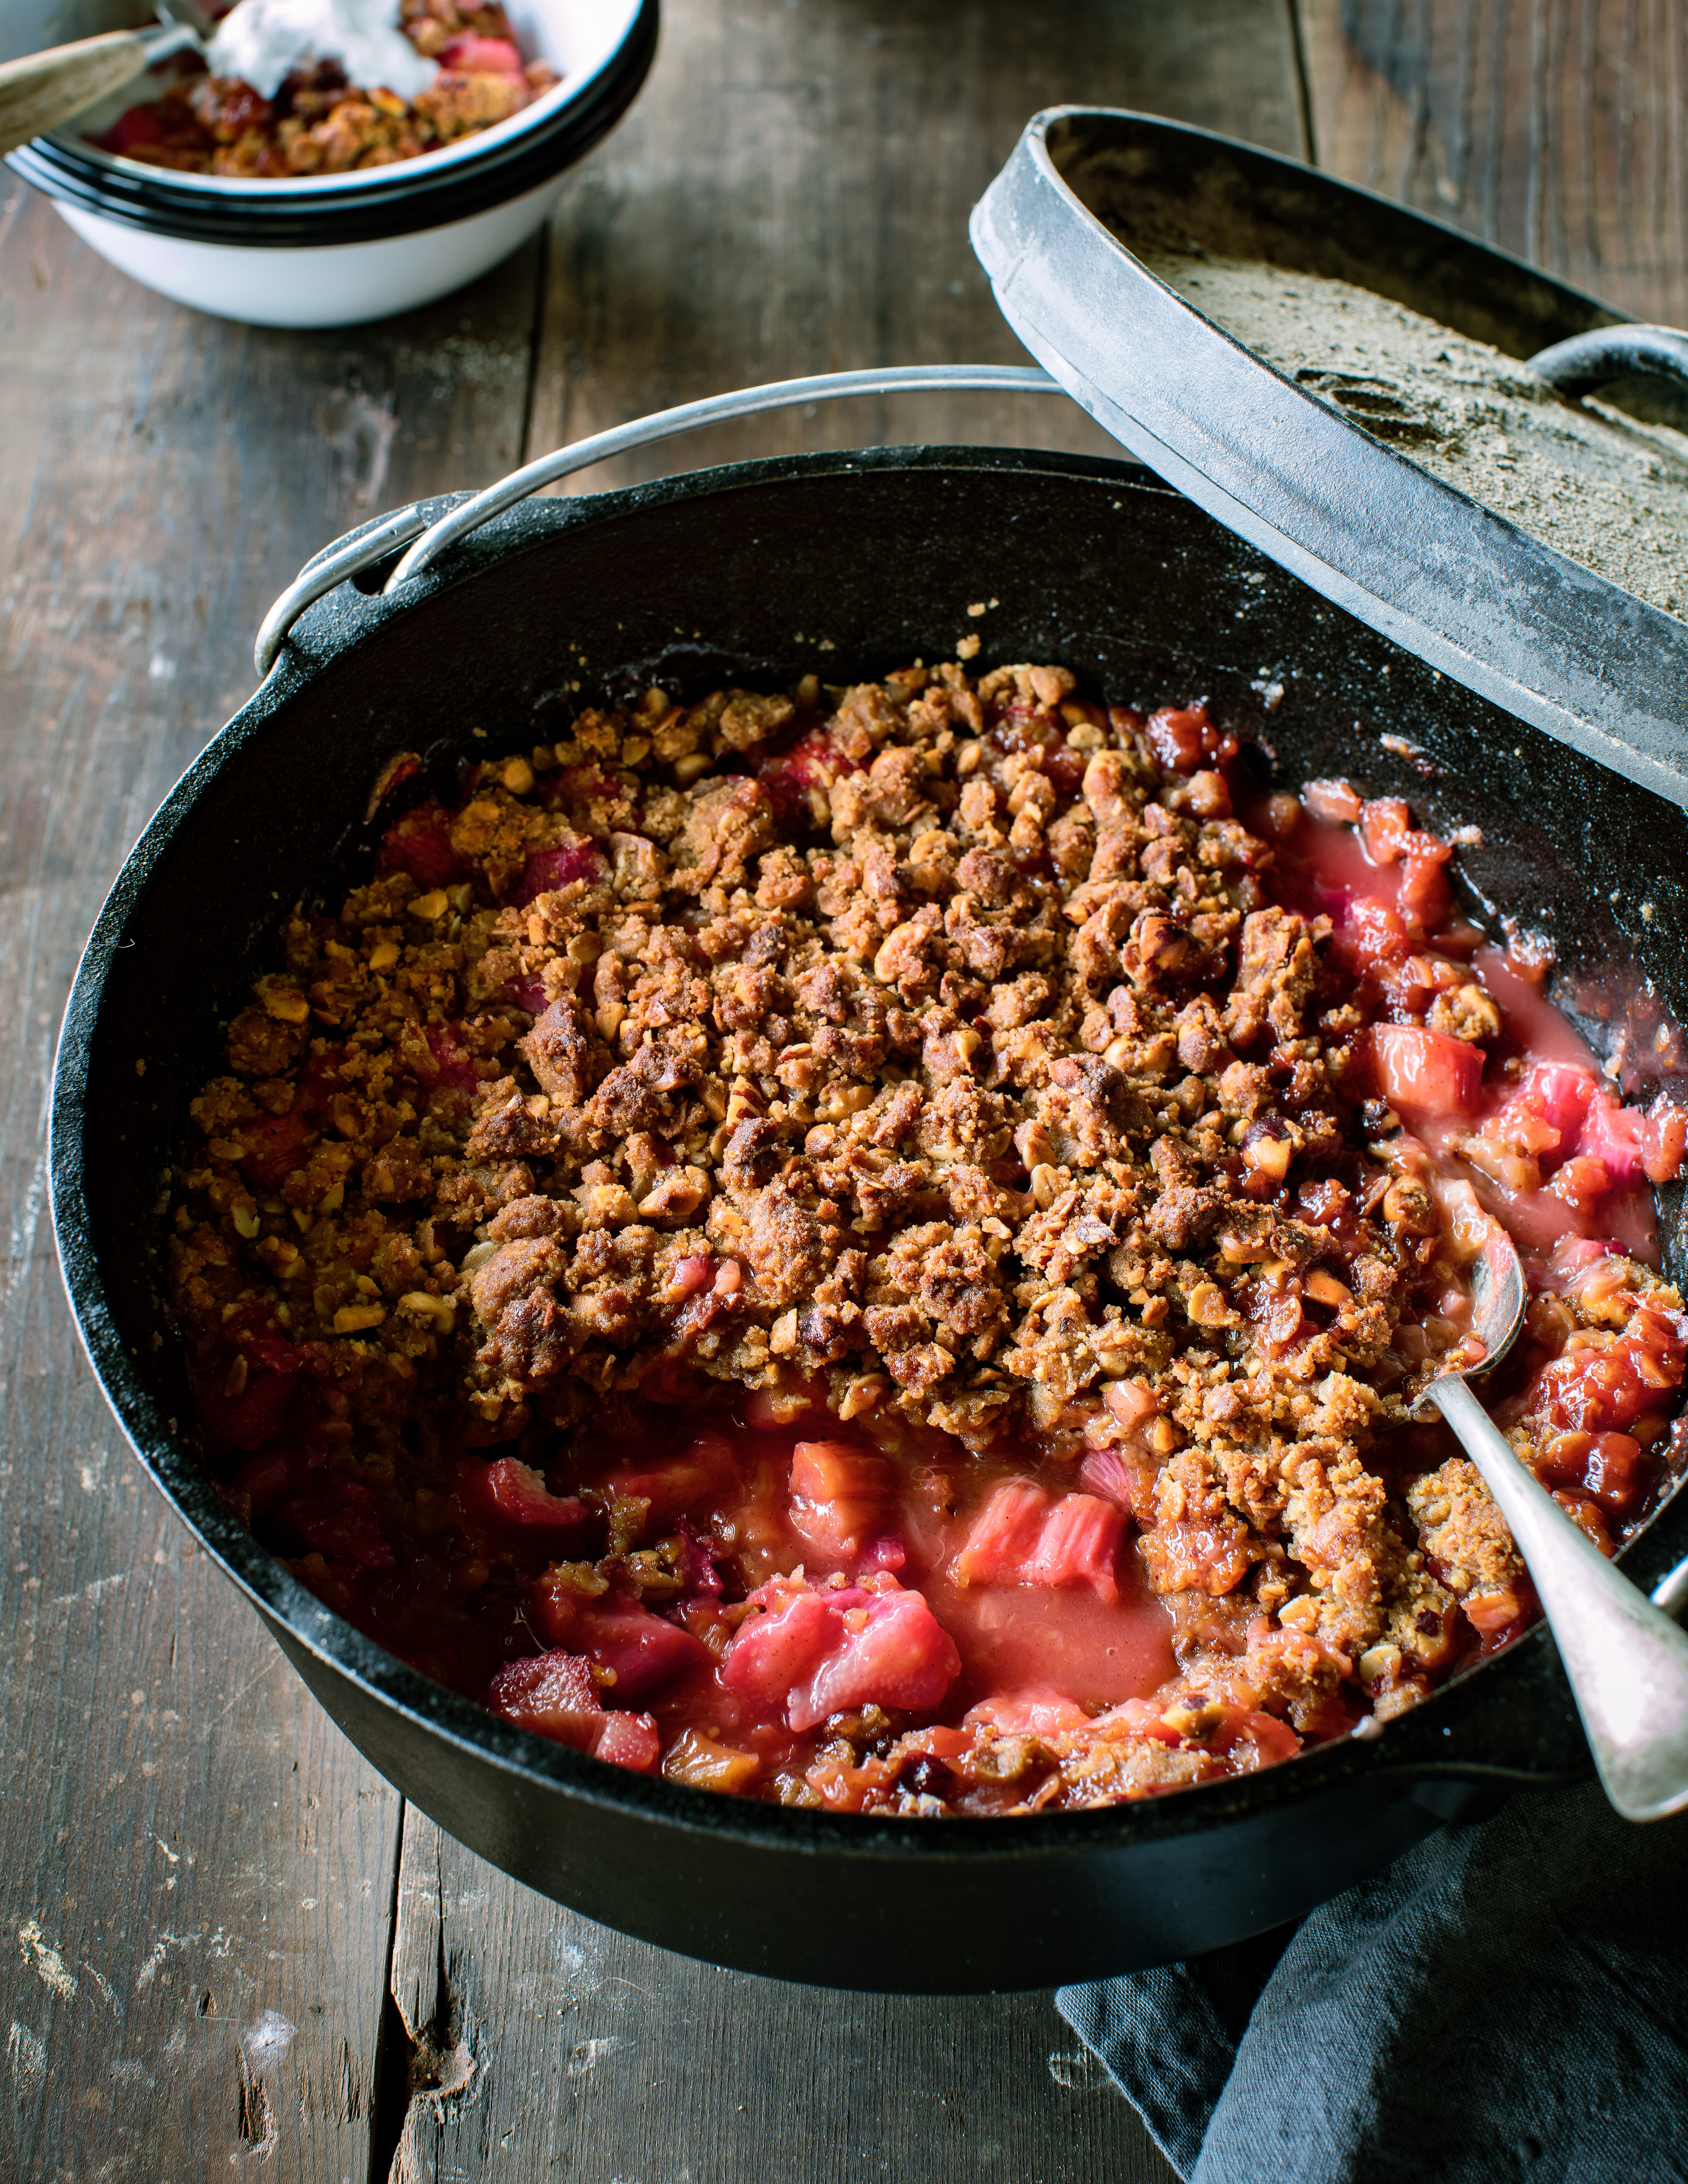 Dutch Oven Rhubarb and Hazelnut Crumble